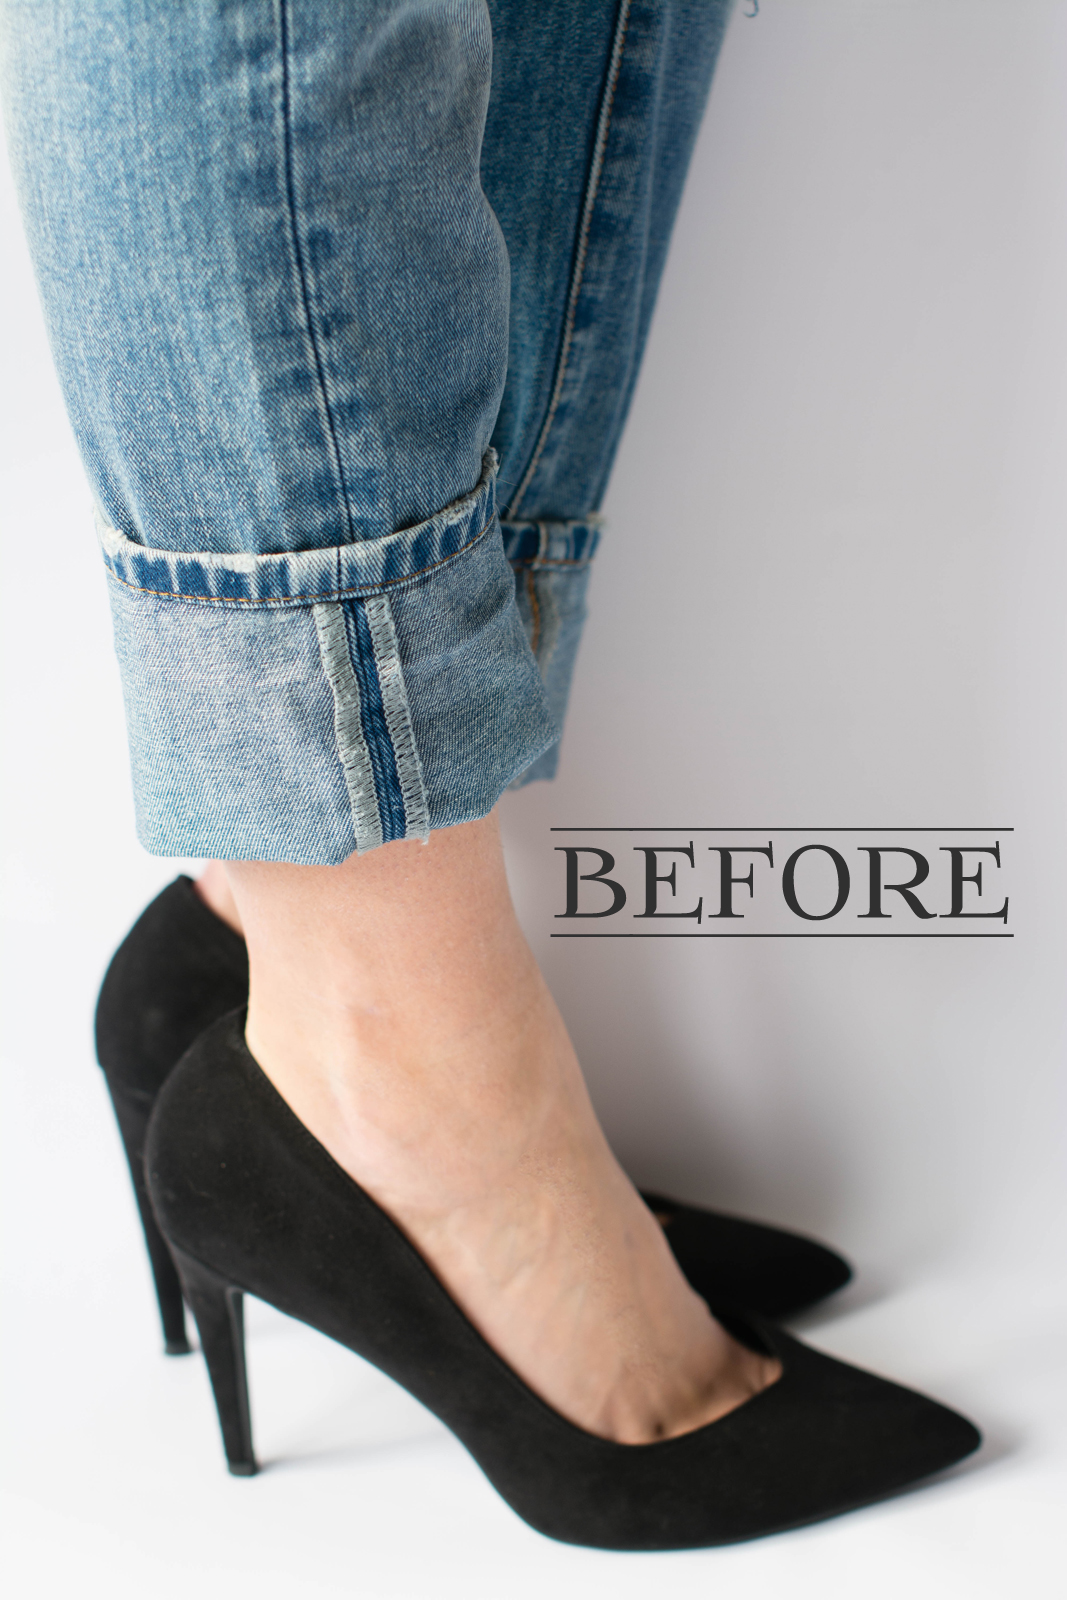 EJSTYLE - Feather jeans DIY before